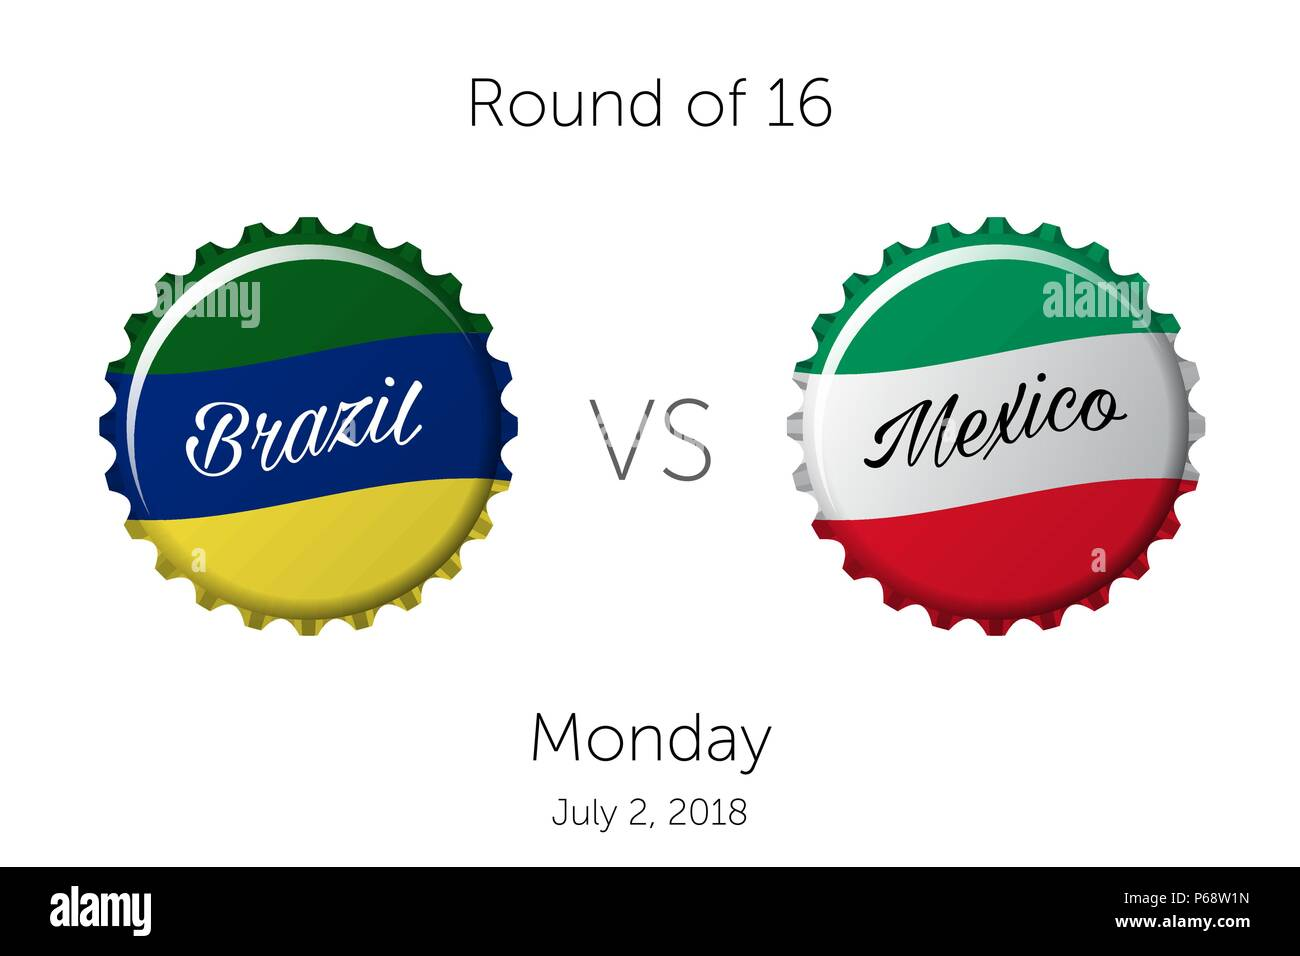 Soccer championship | Round of 16 - Brazil VS Mexico - July 2, 2018 - Stock Vector